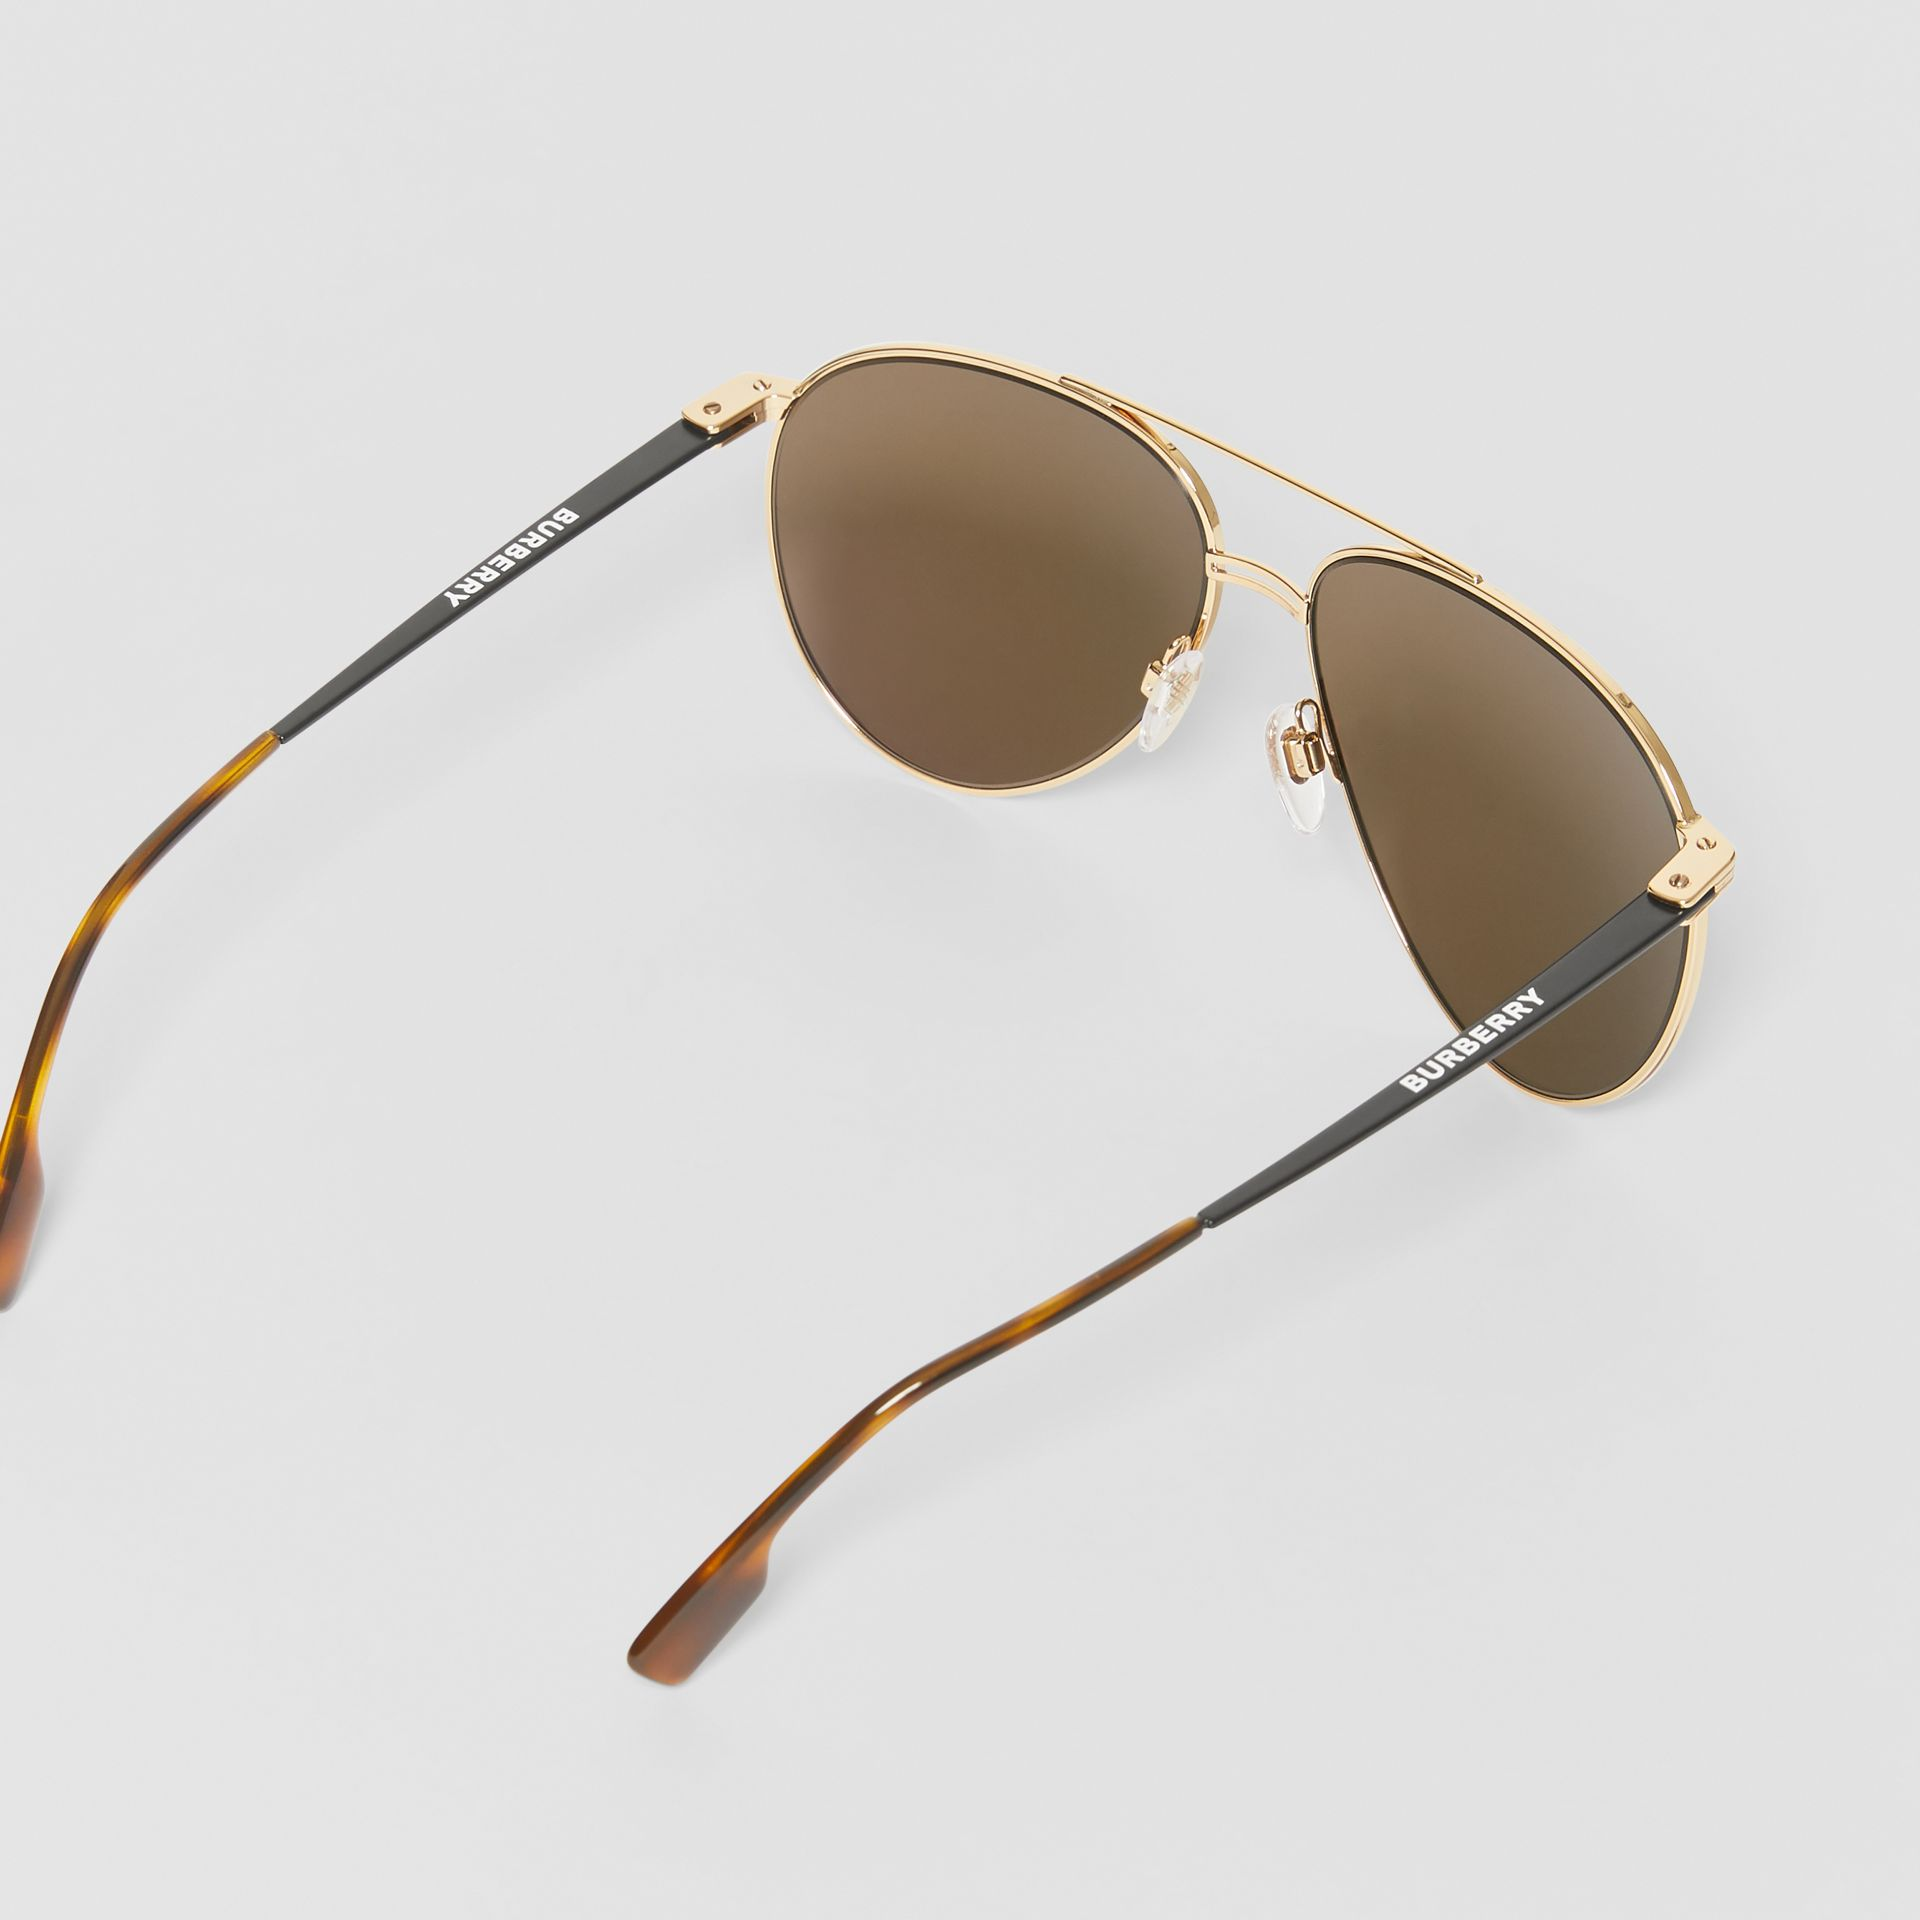 Top Bar Detail Pilot Sunglasses in Tortoiseshell - Men | Burberry United Kingdom - gallery image 4